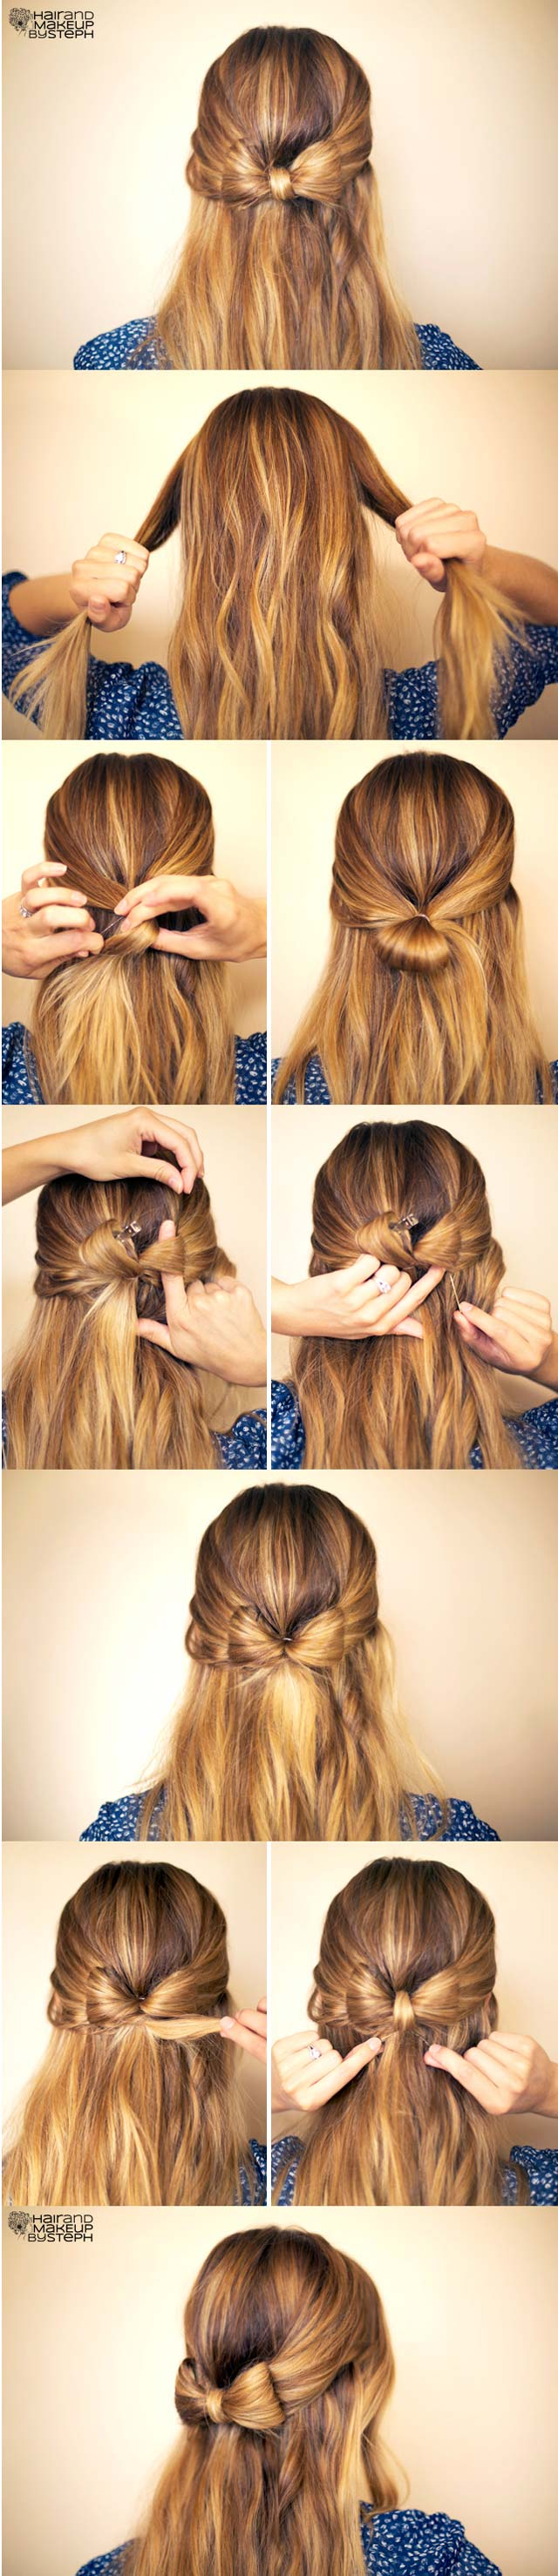 Easy Hairstyles Steps With Pictures